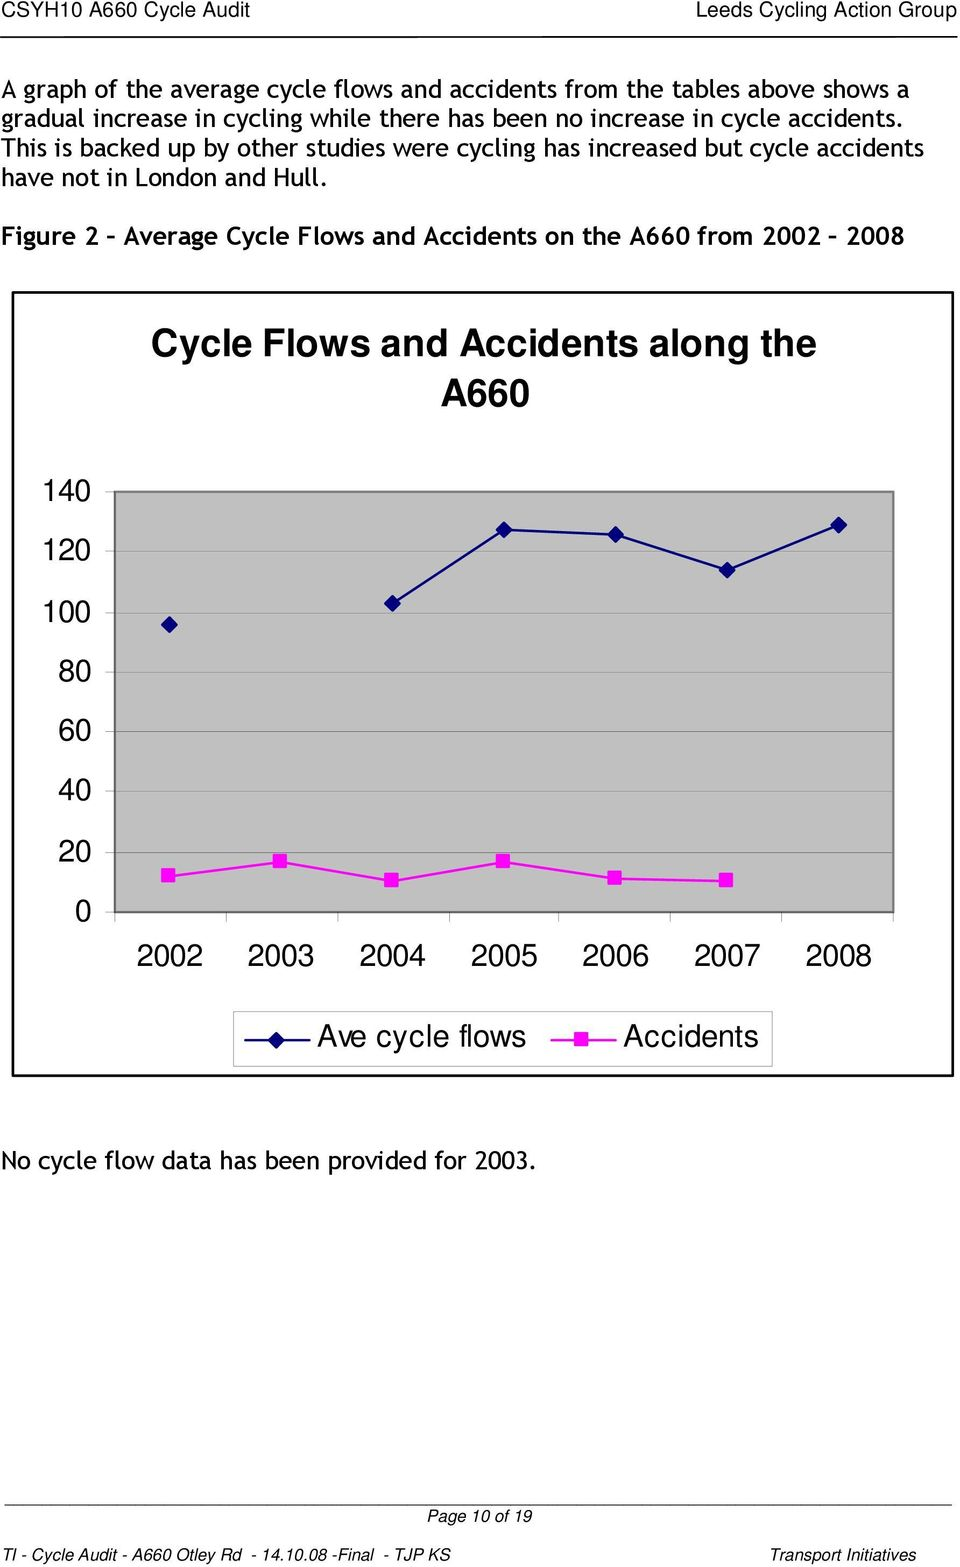 This is backed up by other studies were cycling has increased but cycle accidents have not in London and Hull.